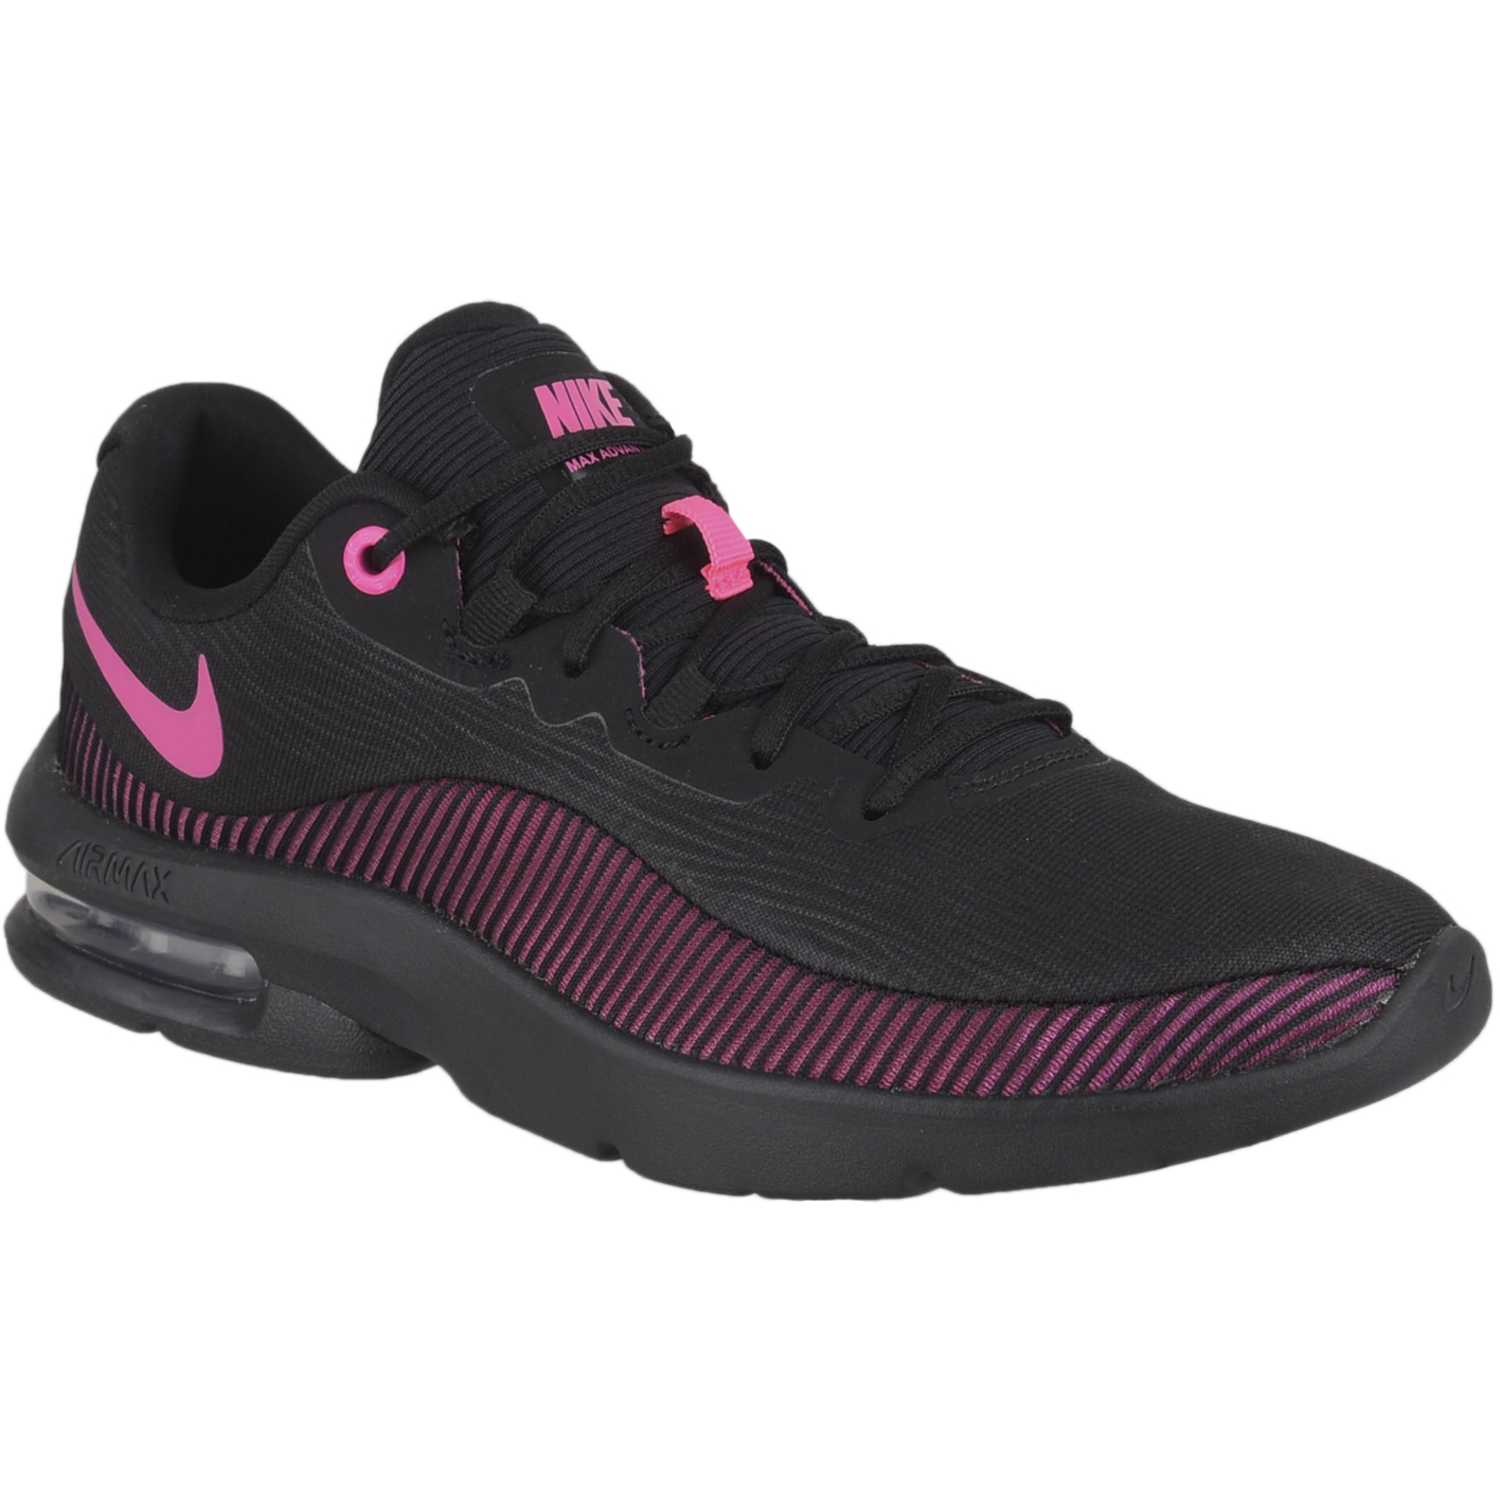 detailed look 41156 891ab Zapatilla de Mujer Nike Negro  rosado wmns nike air max advantage 2